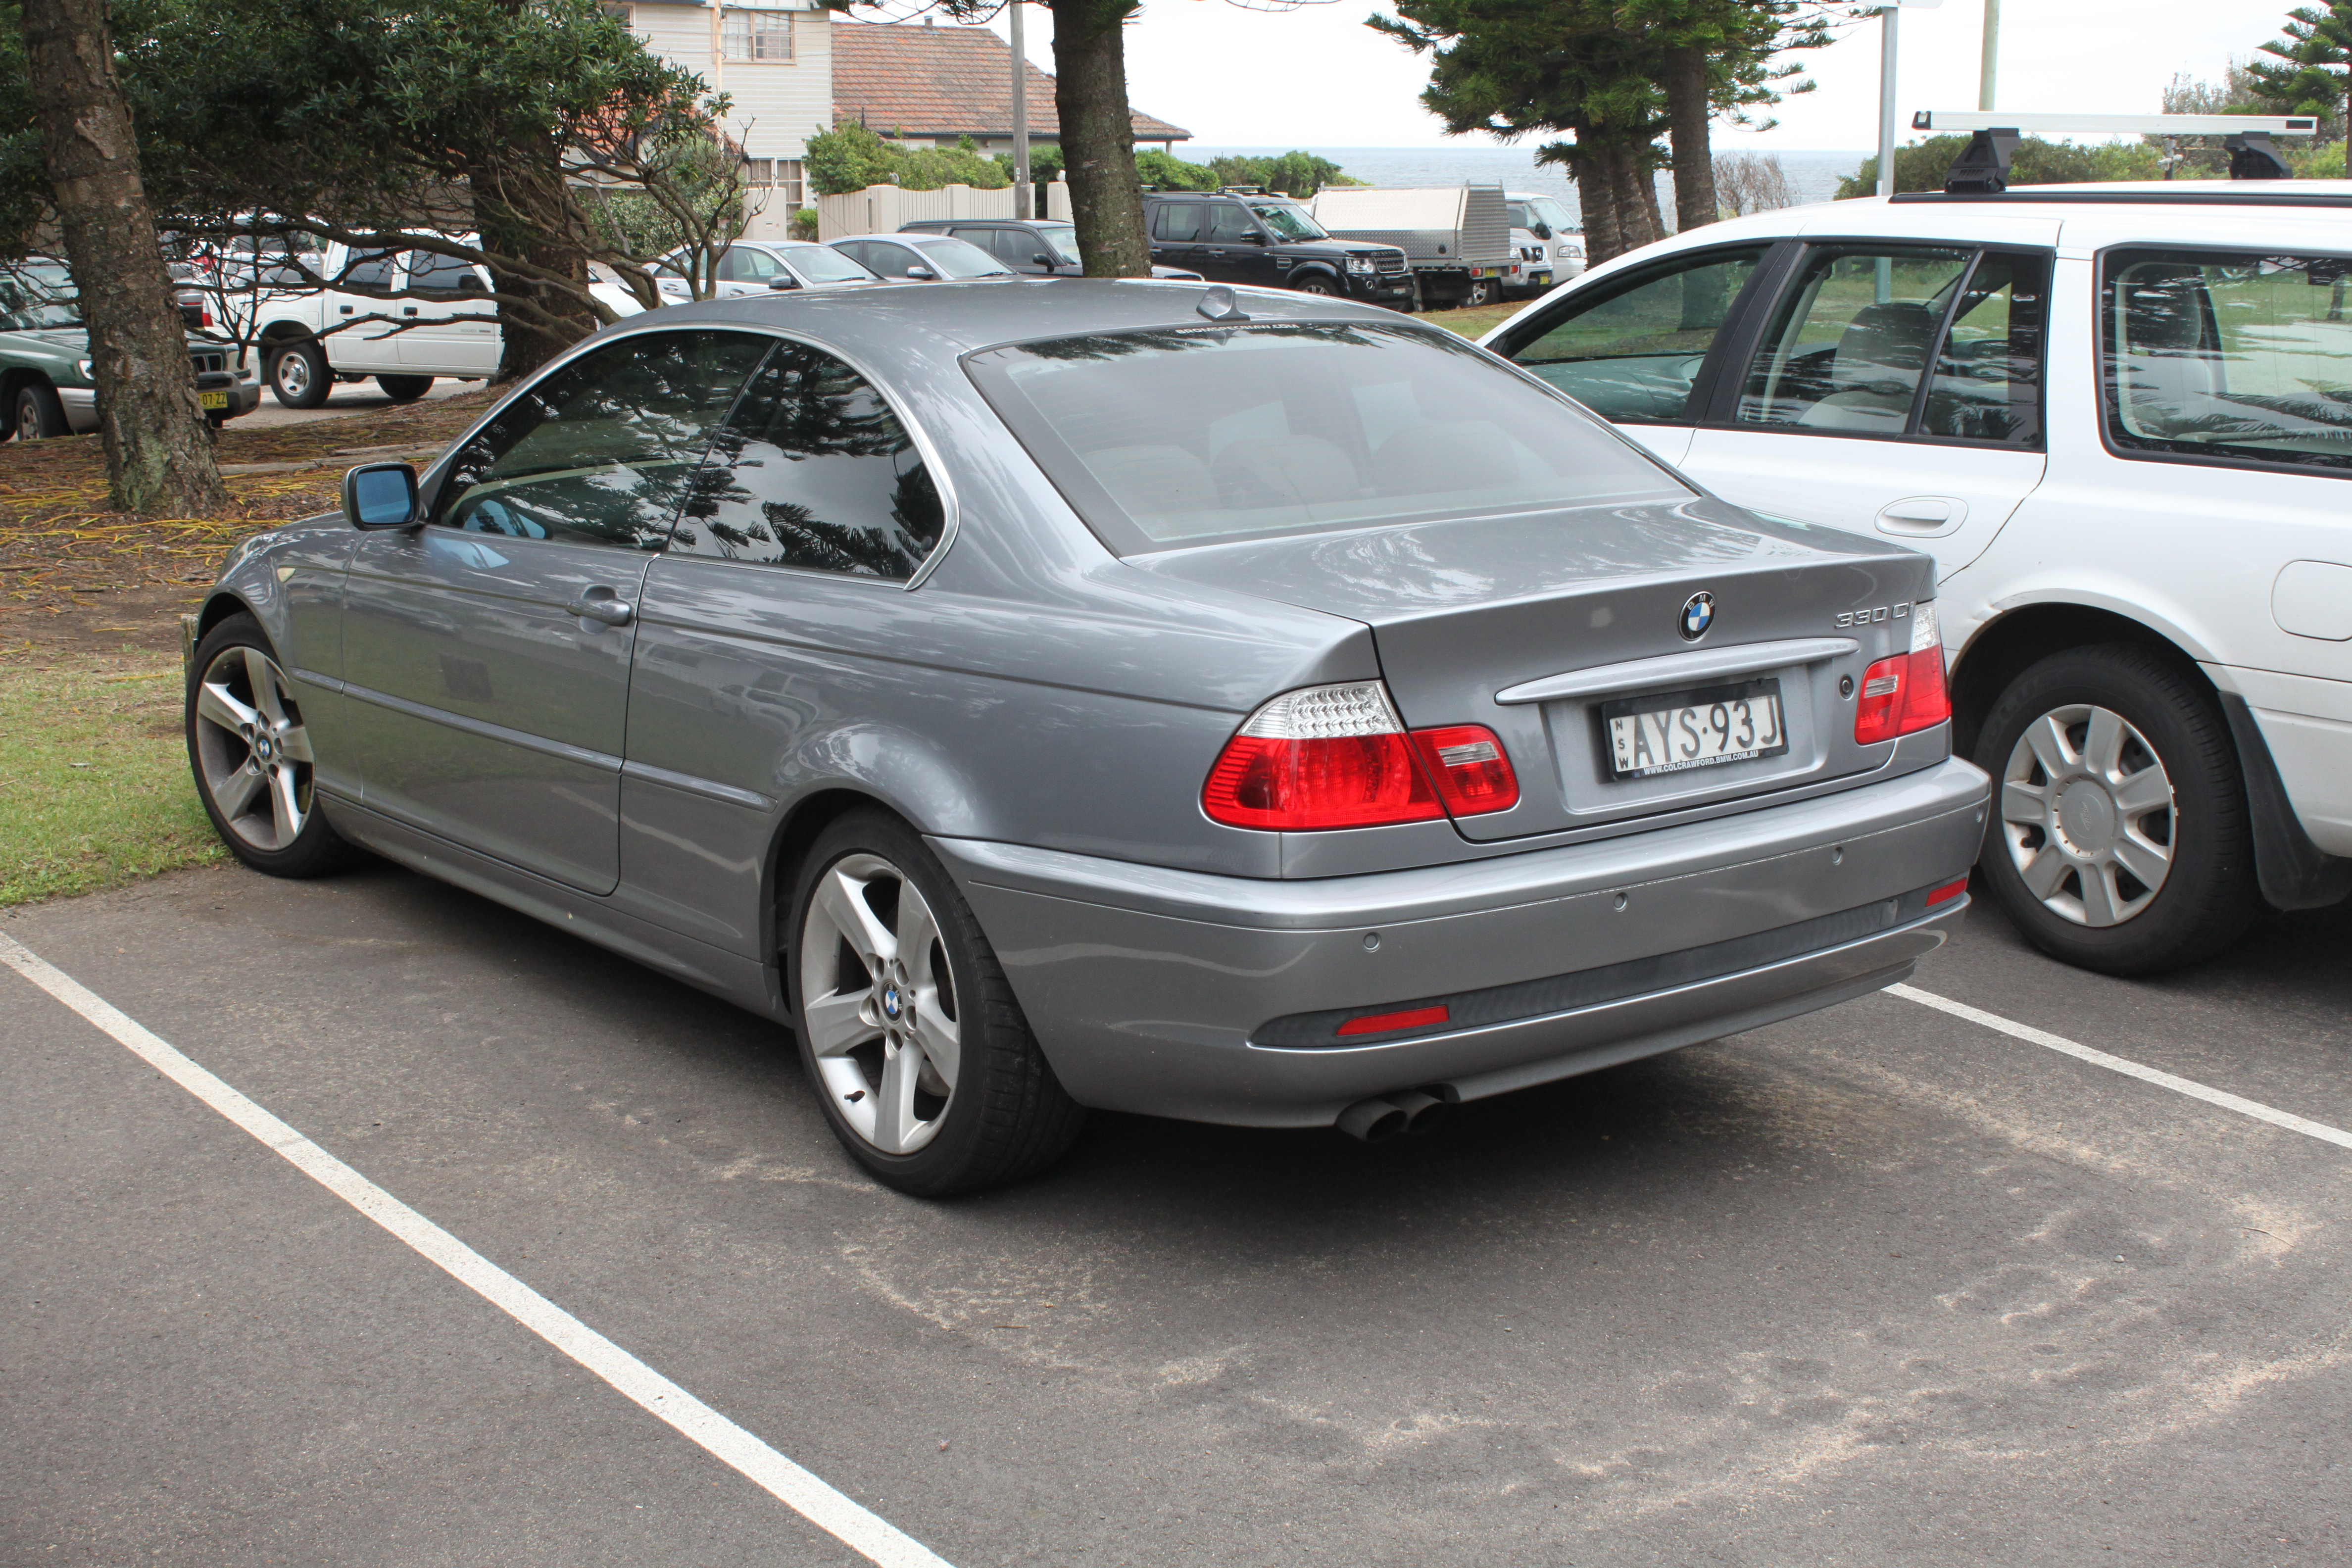 File:2004 BMW 330Ci (E46) coupe (23150002691).jpg - Wikimedia Commons